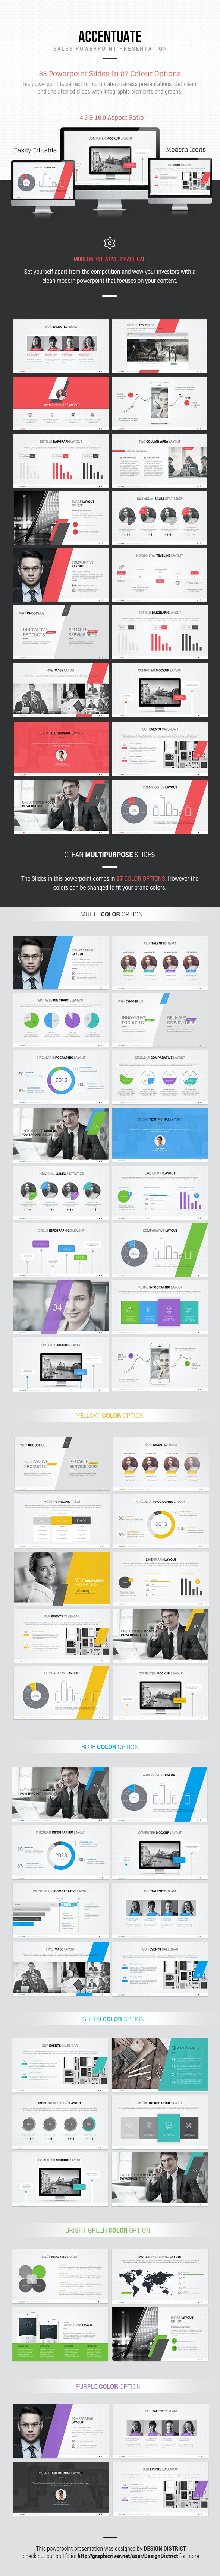 Sales Powerpoint Presentation - Pitch Deck PowerPoint Templates